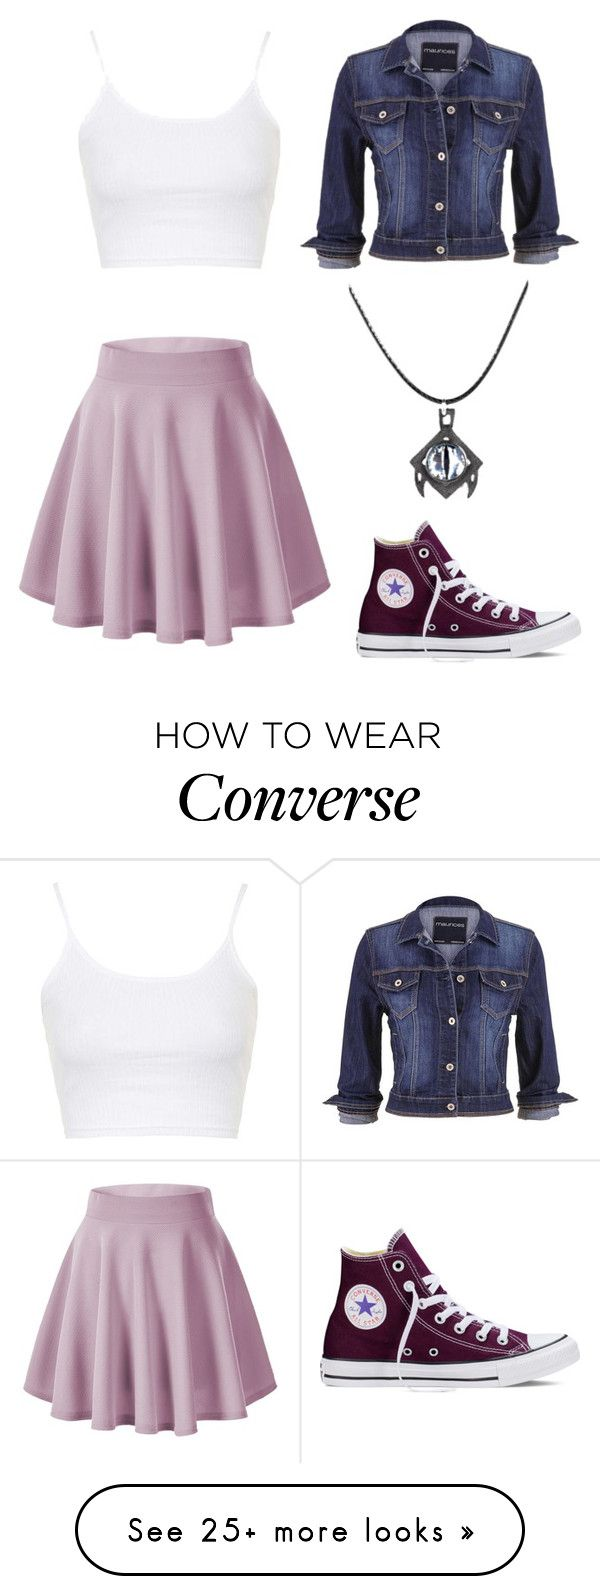 """""""Meet me :)"""" by angela229 on Polyvore featuring Topshop, Converse, maurices, women's clothing, women, female, woman, misses and juniors"""